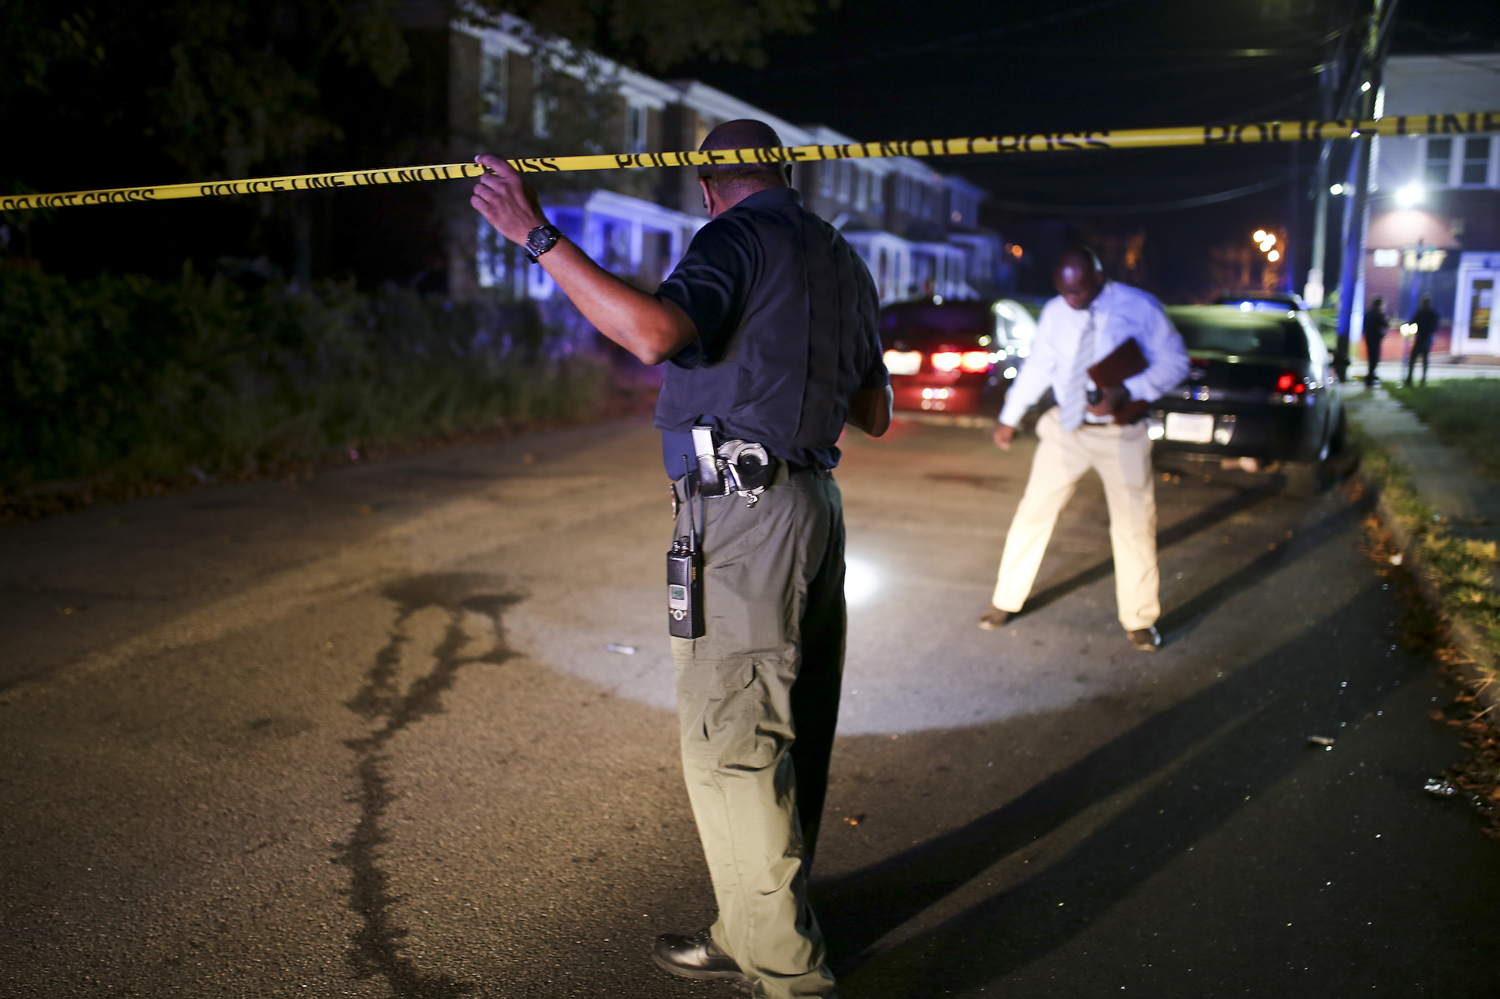 Petersburg Bureau of Police Lt. Emanuel Chambliss, center, and another detective investigate the scene where they believe five people were shot at about 9:30 p.m. at the intersection of Mistletoe and Harding Streets in Petersburg on Sunday, Sept. 17, 2017. [Scott P. Yates/progress-index.com]